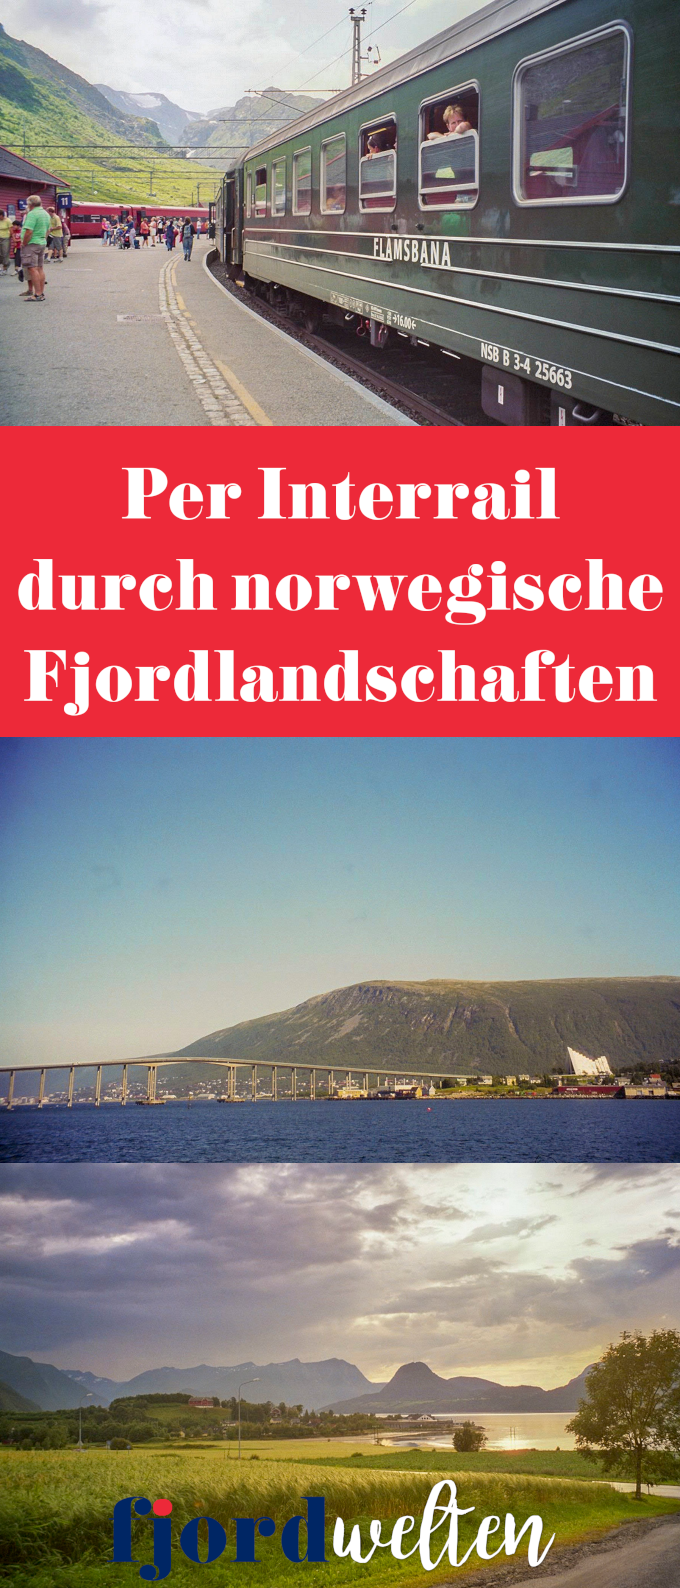 Per Interrail durch Norwegen